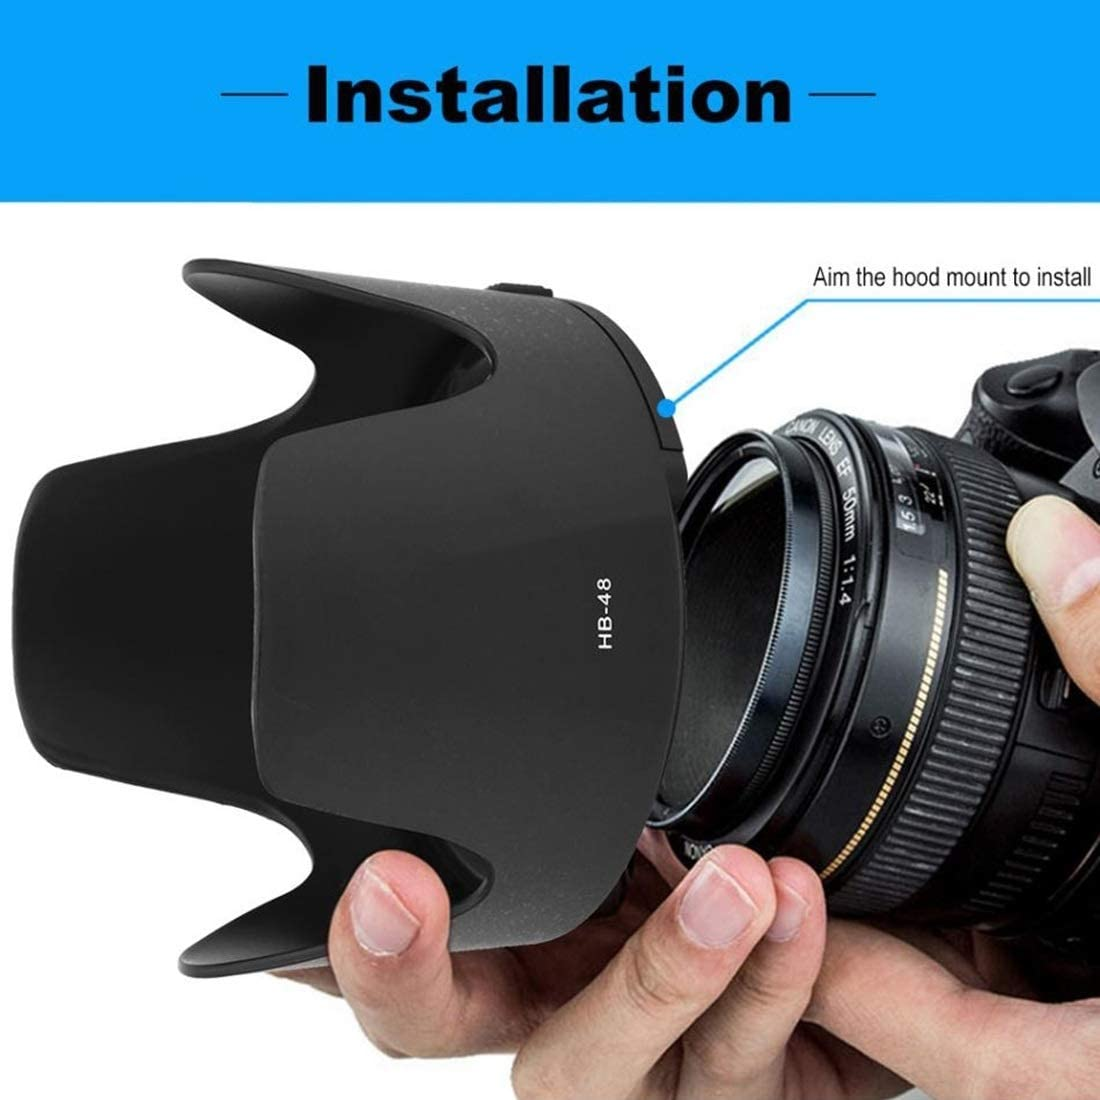 SHUHAN Camera Lens Replacement Part HB-48 Lens Hood Shade for Nikon AF-S 70-200mm f//2.8G VRII Lens Photographic Equipment